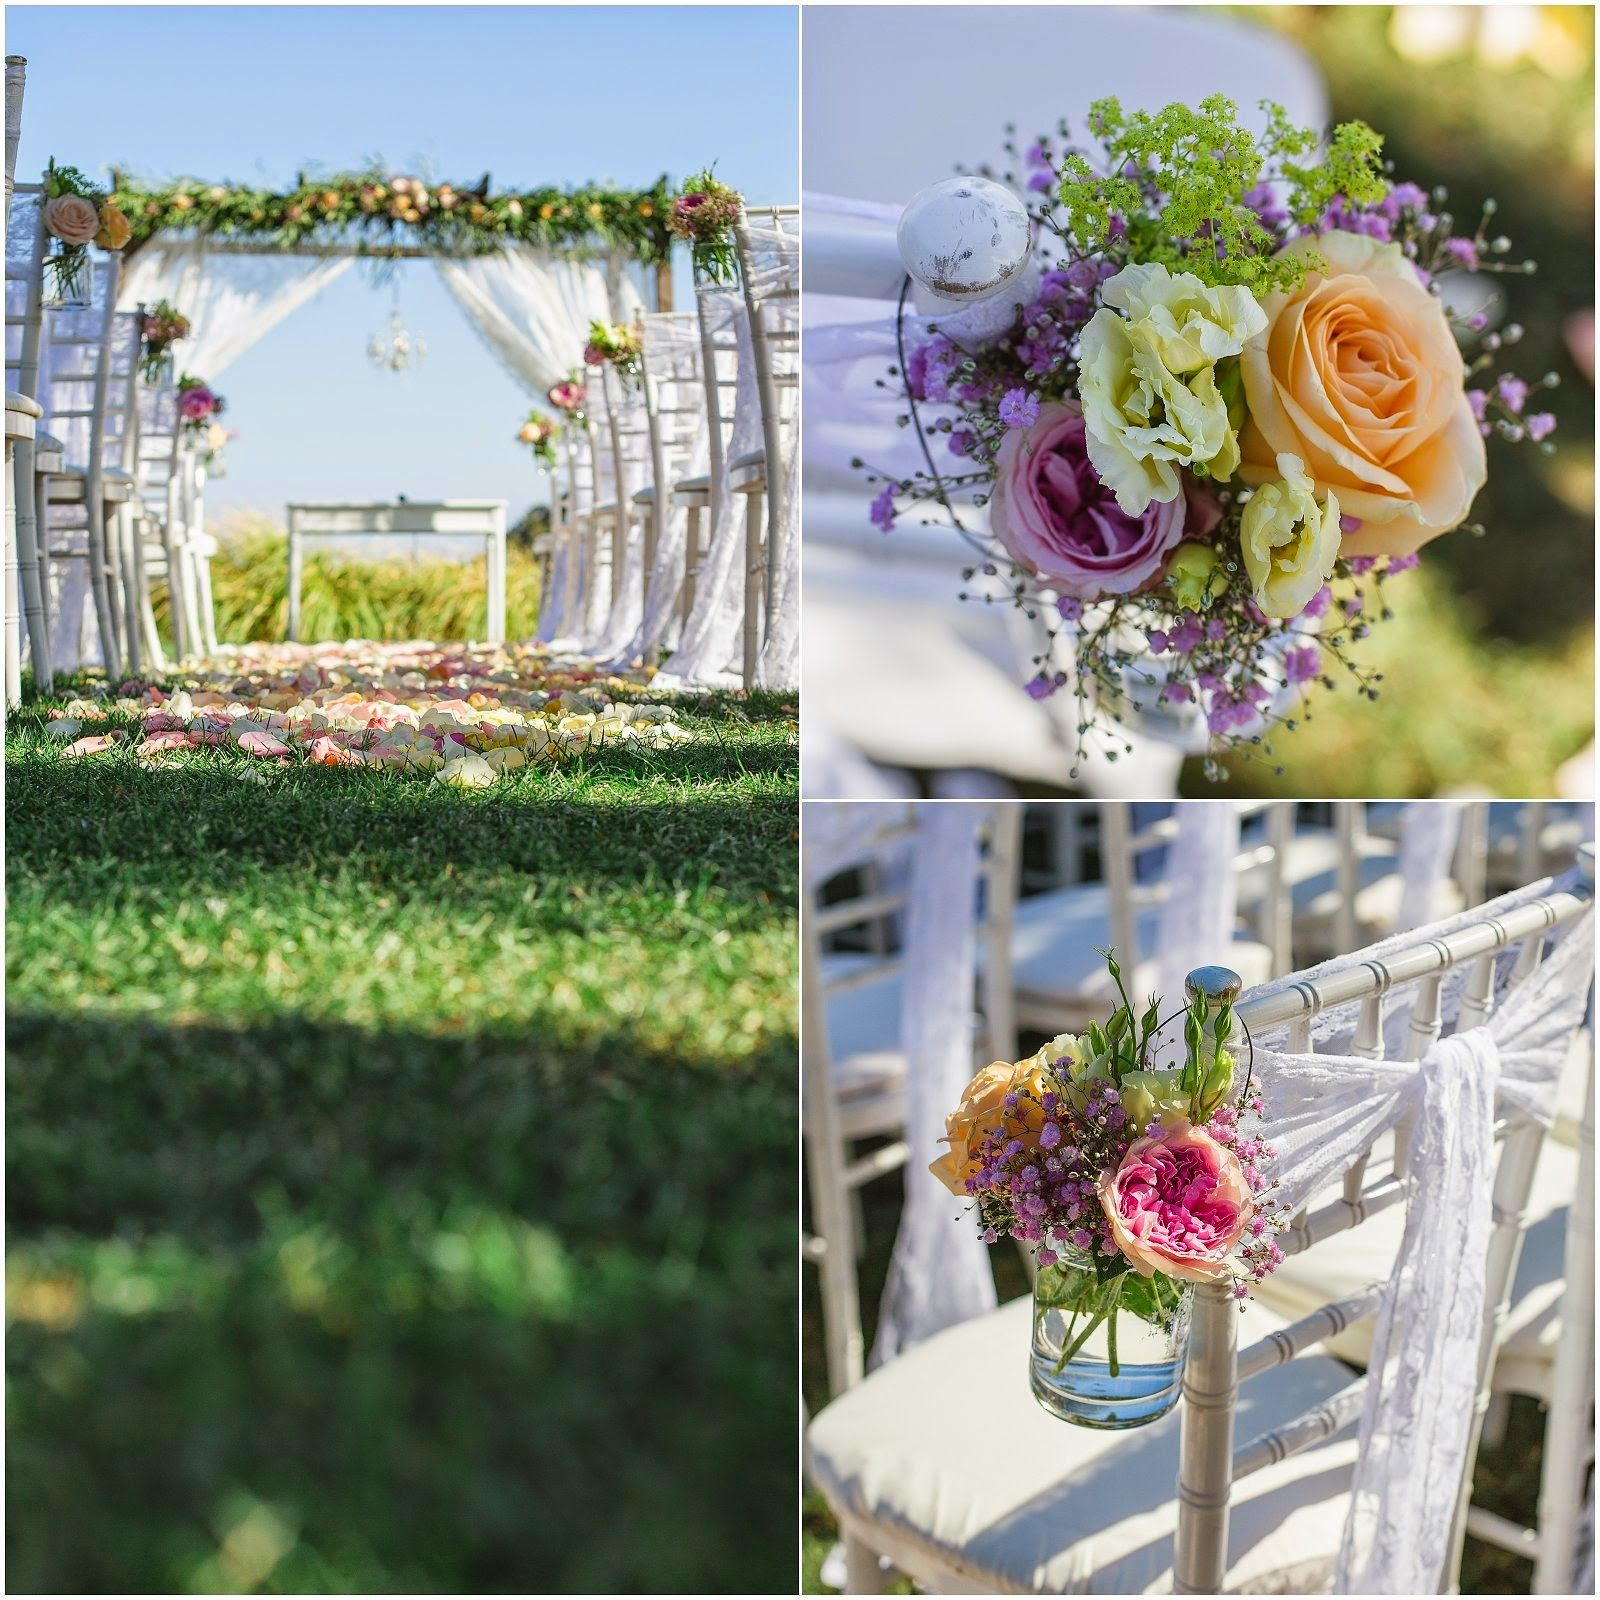 Latest wedding decoration images  Pin by Rachel Rose Weddings on RRW Wedding Flowers  Pinterest